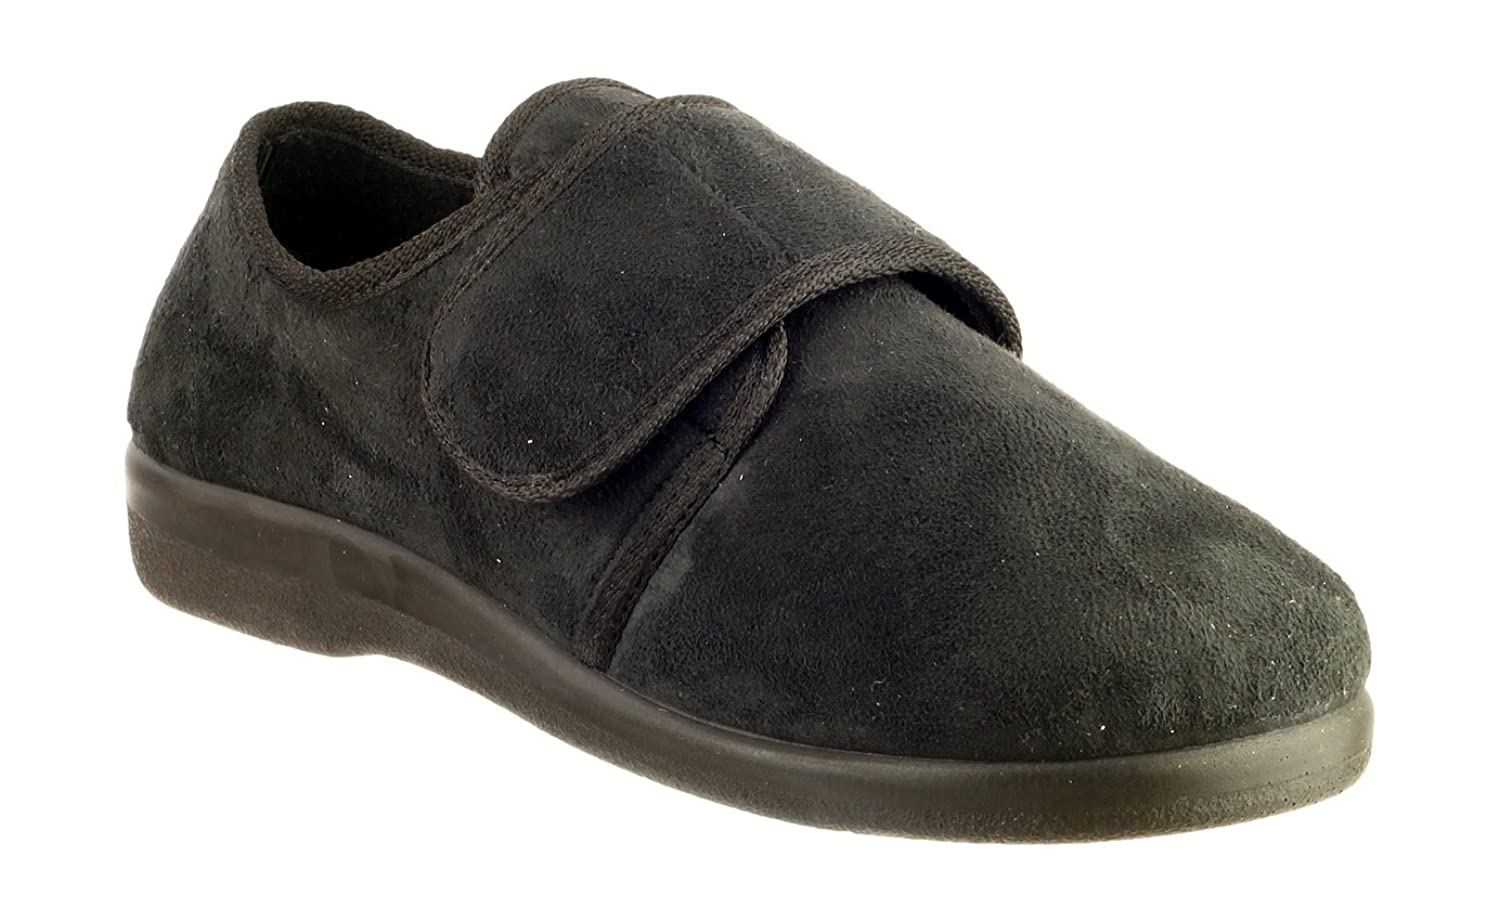 GBS Med LEWISHAM Unisex Medical Touch Fasten Slippers Black